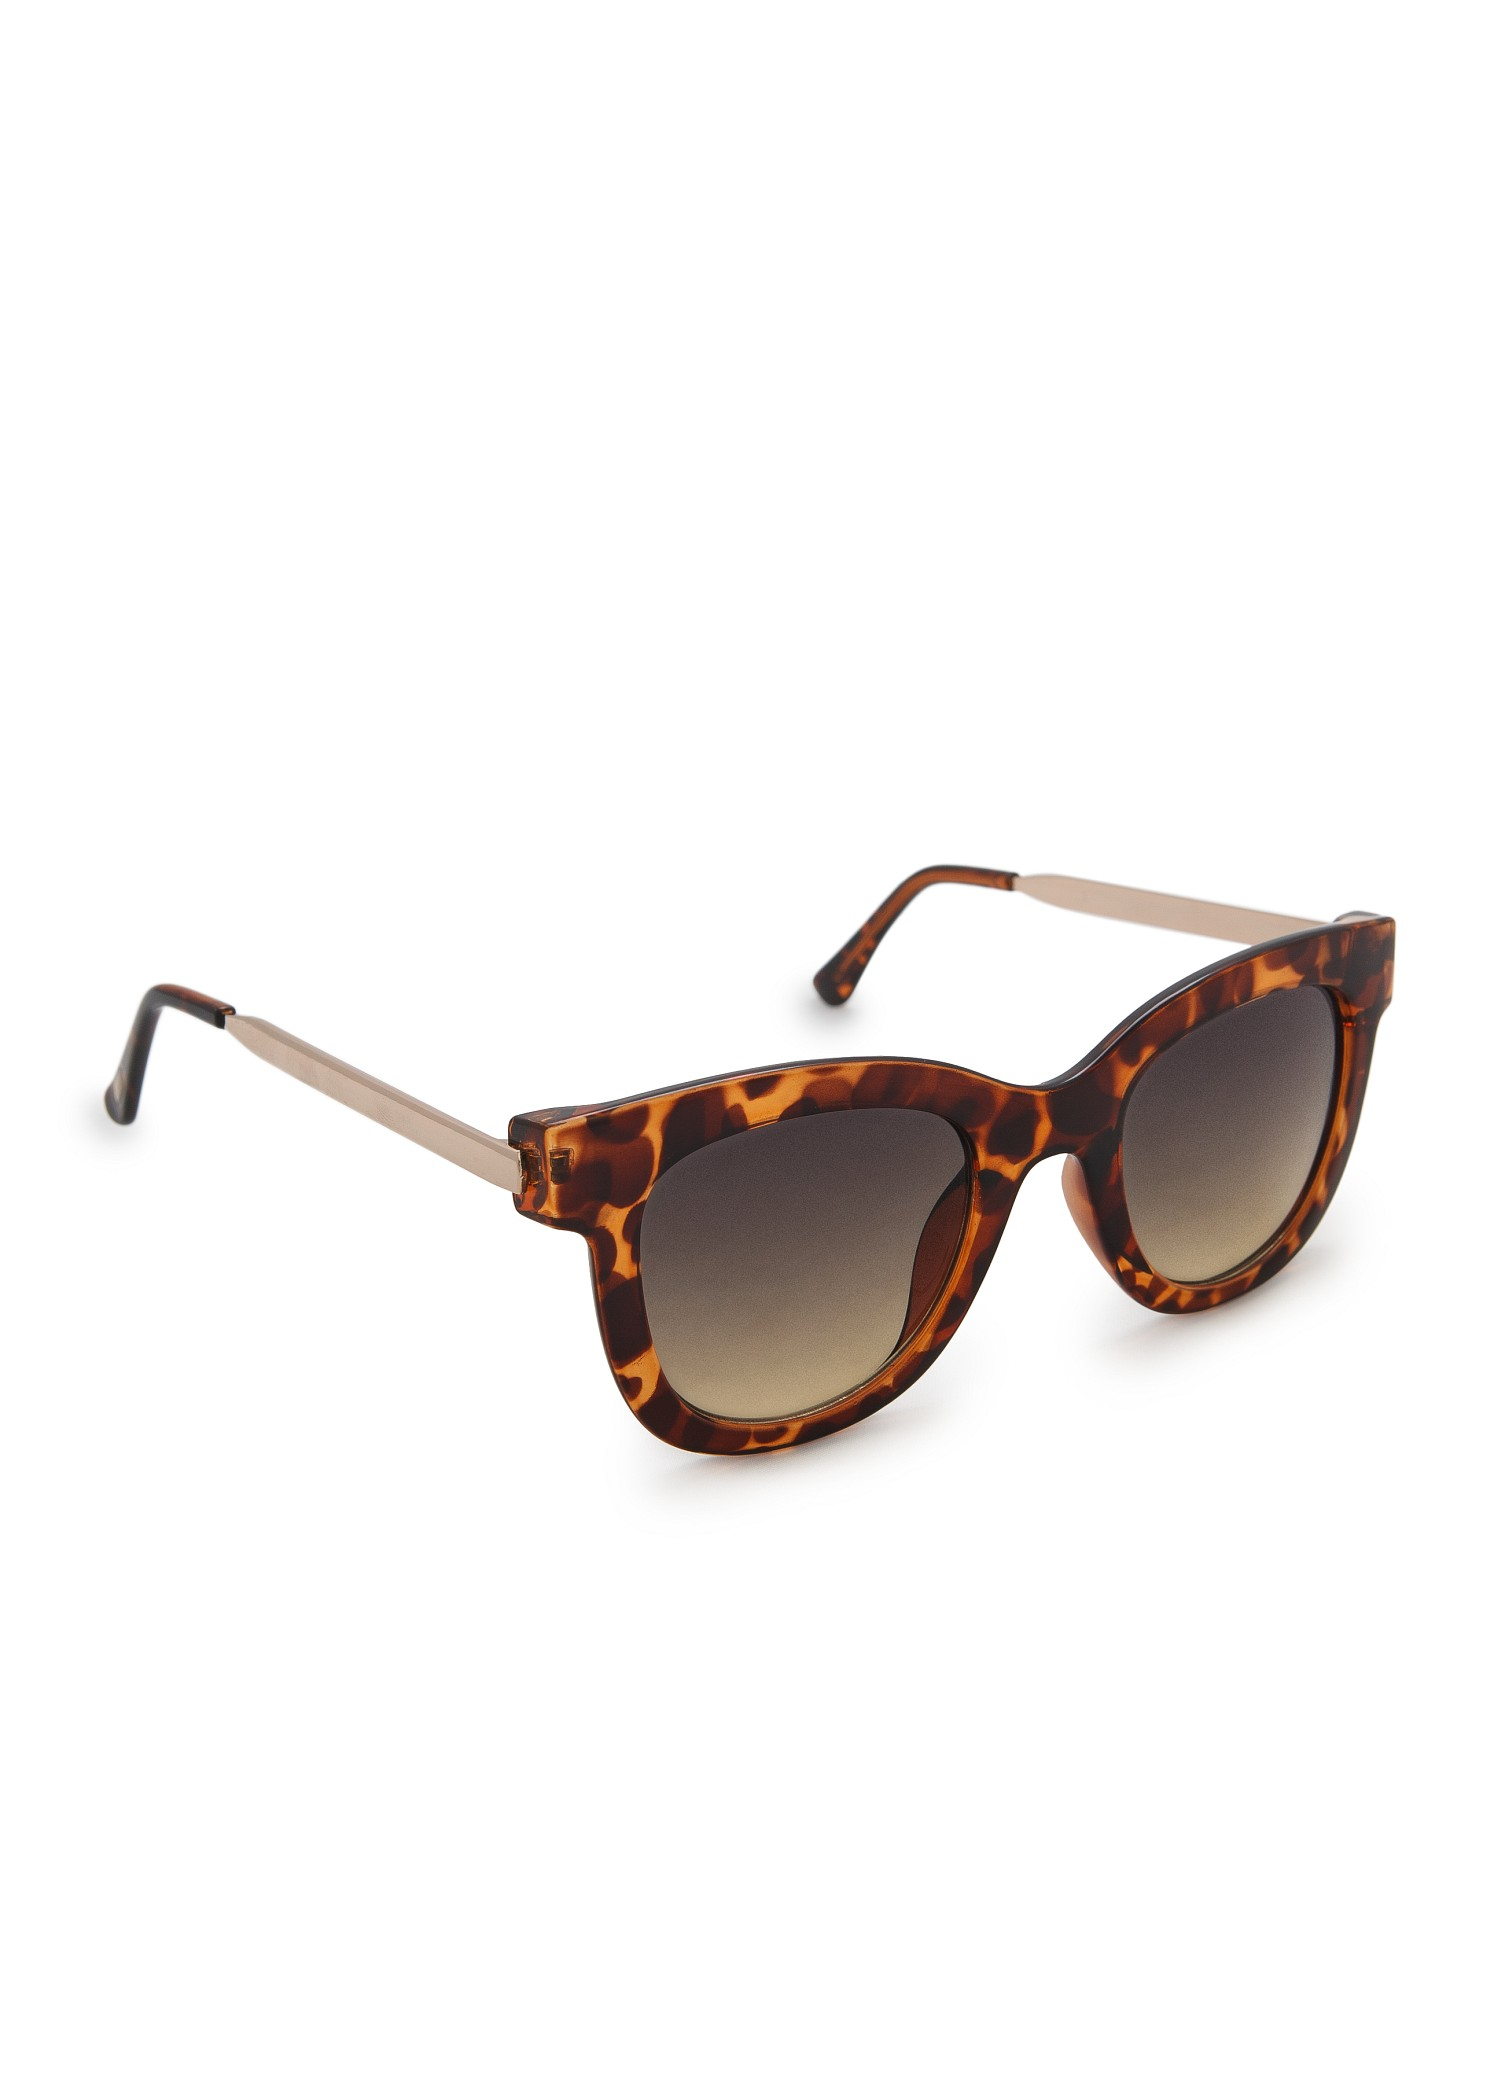 resin frame sunglasses in brown - Brown Mango lKXnzAG3